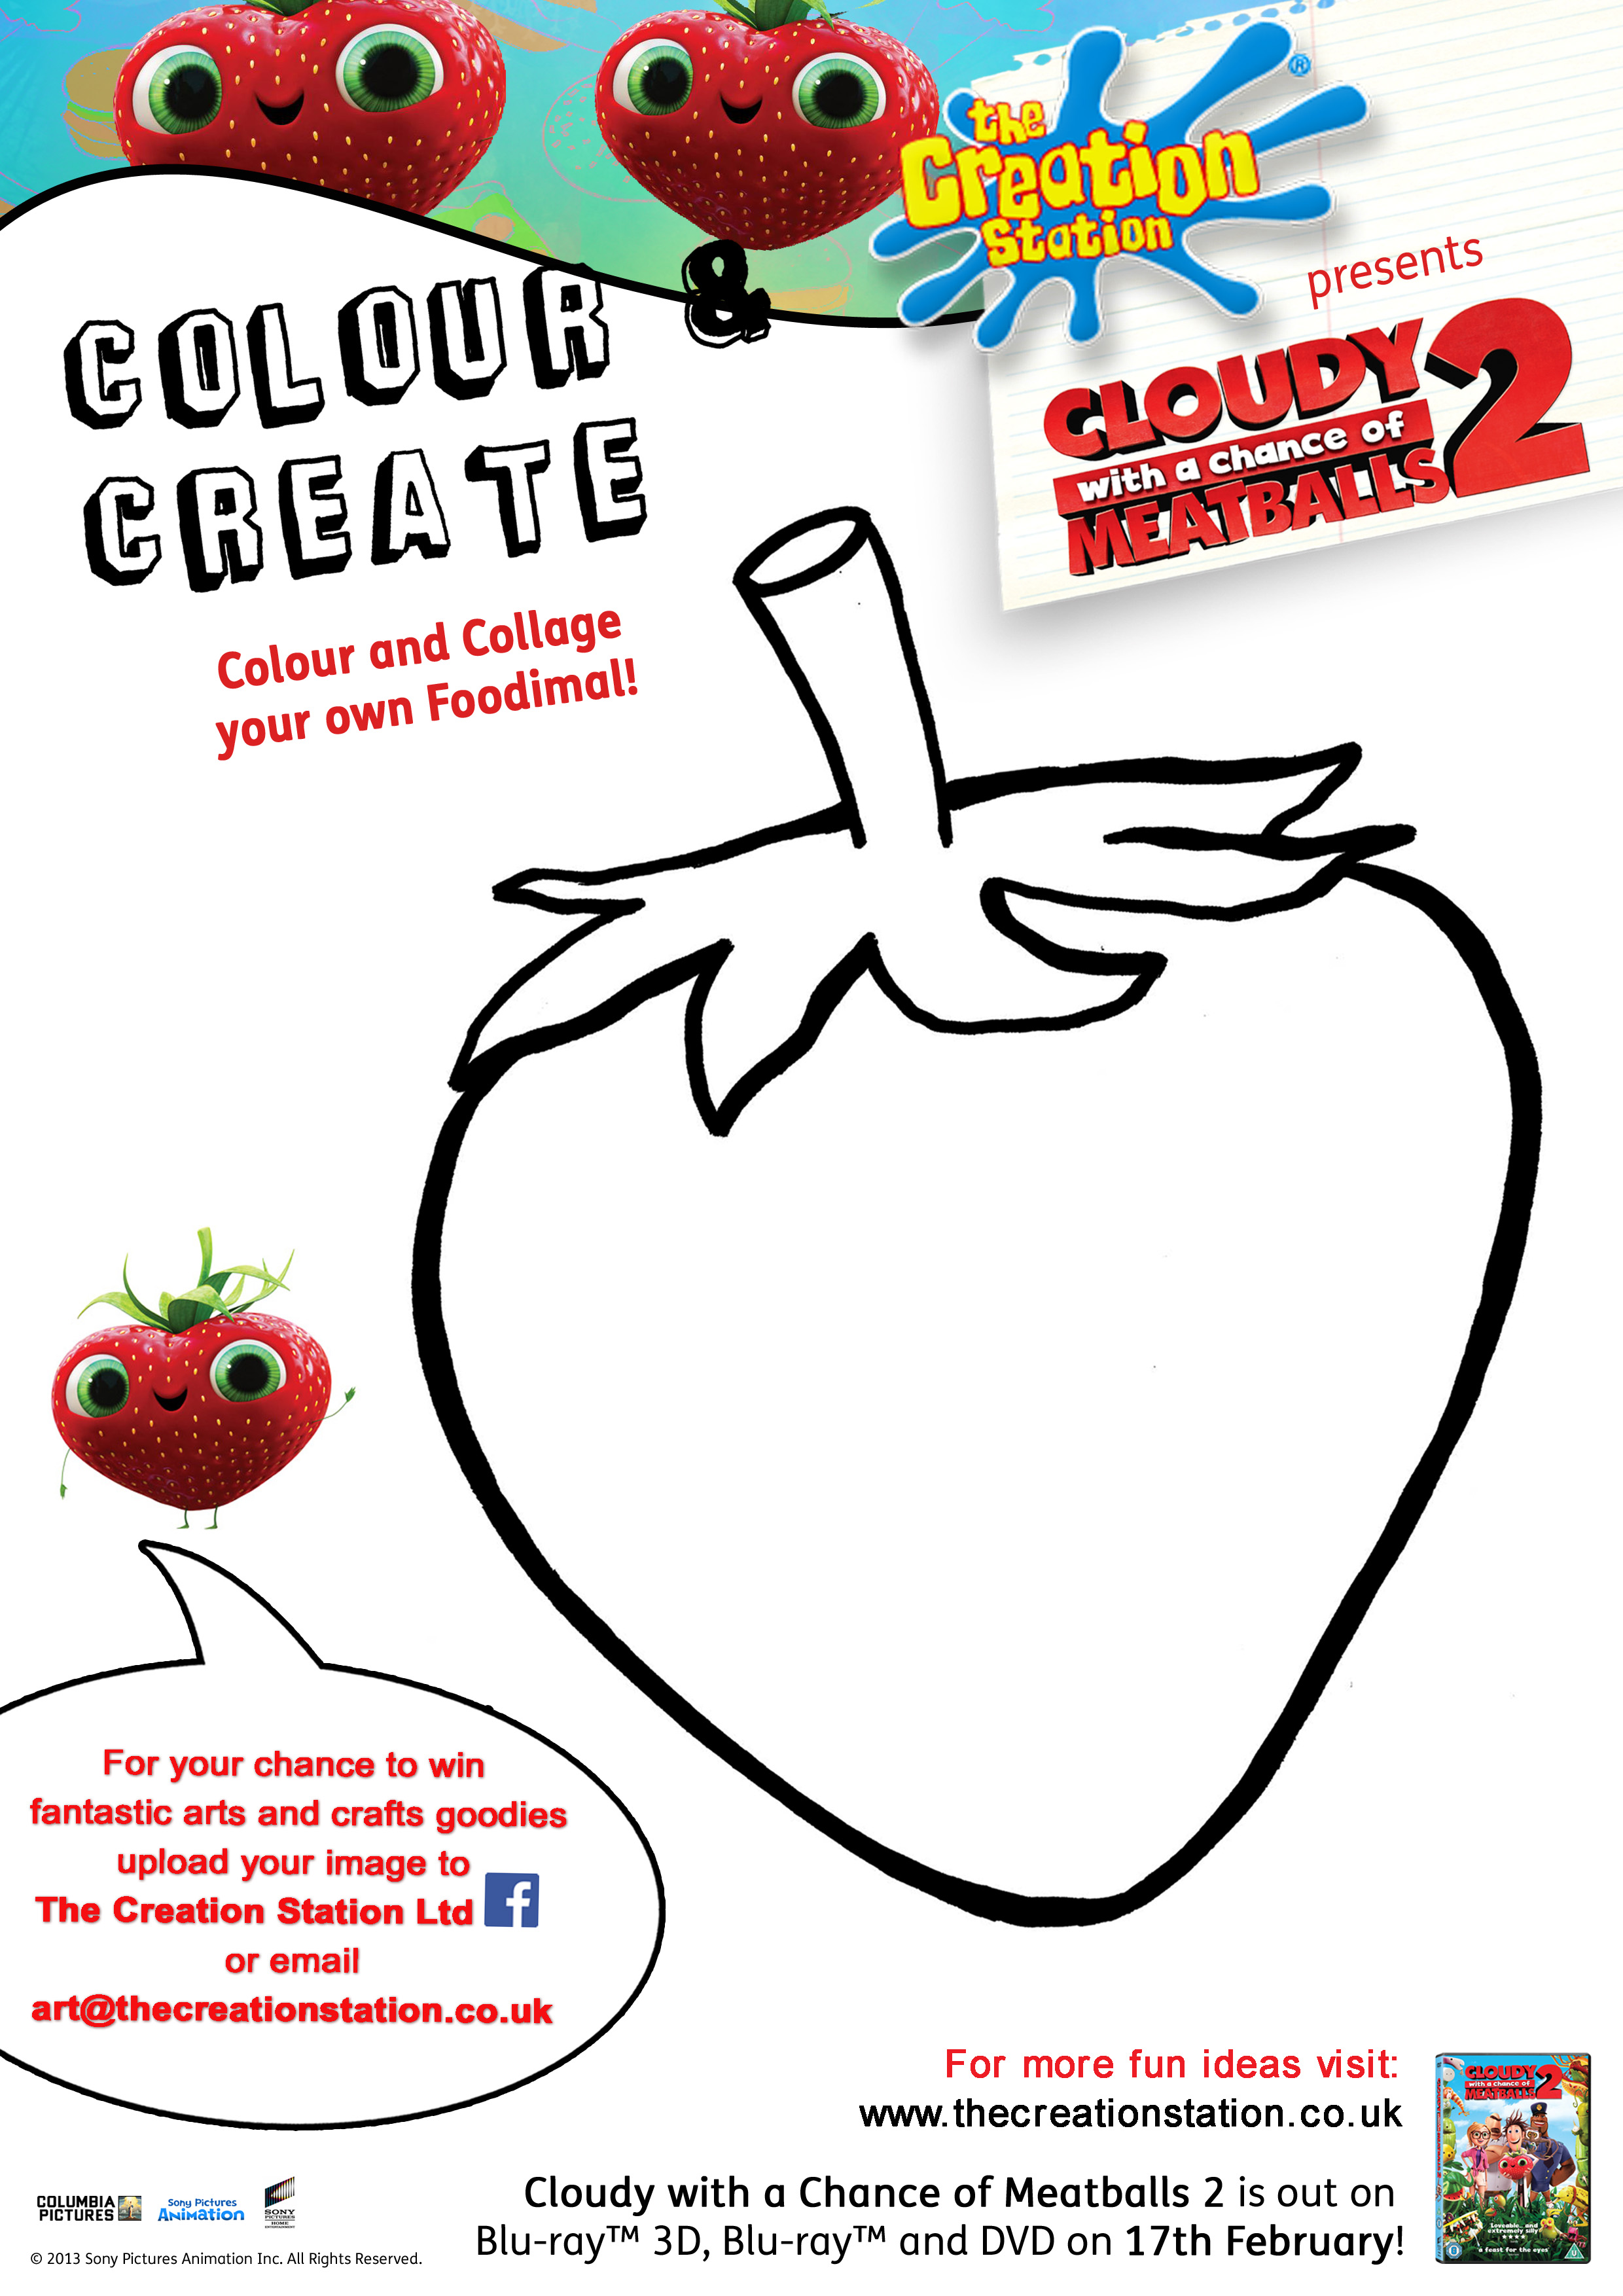 Fantastic Foodimals - The Creation Station Cloudy With A Chance Of Meatballs 2 Characters Names